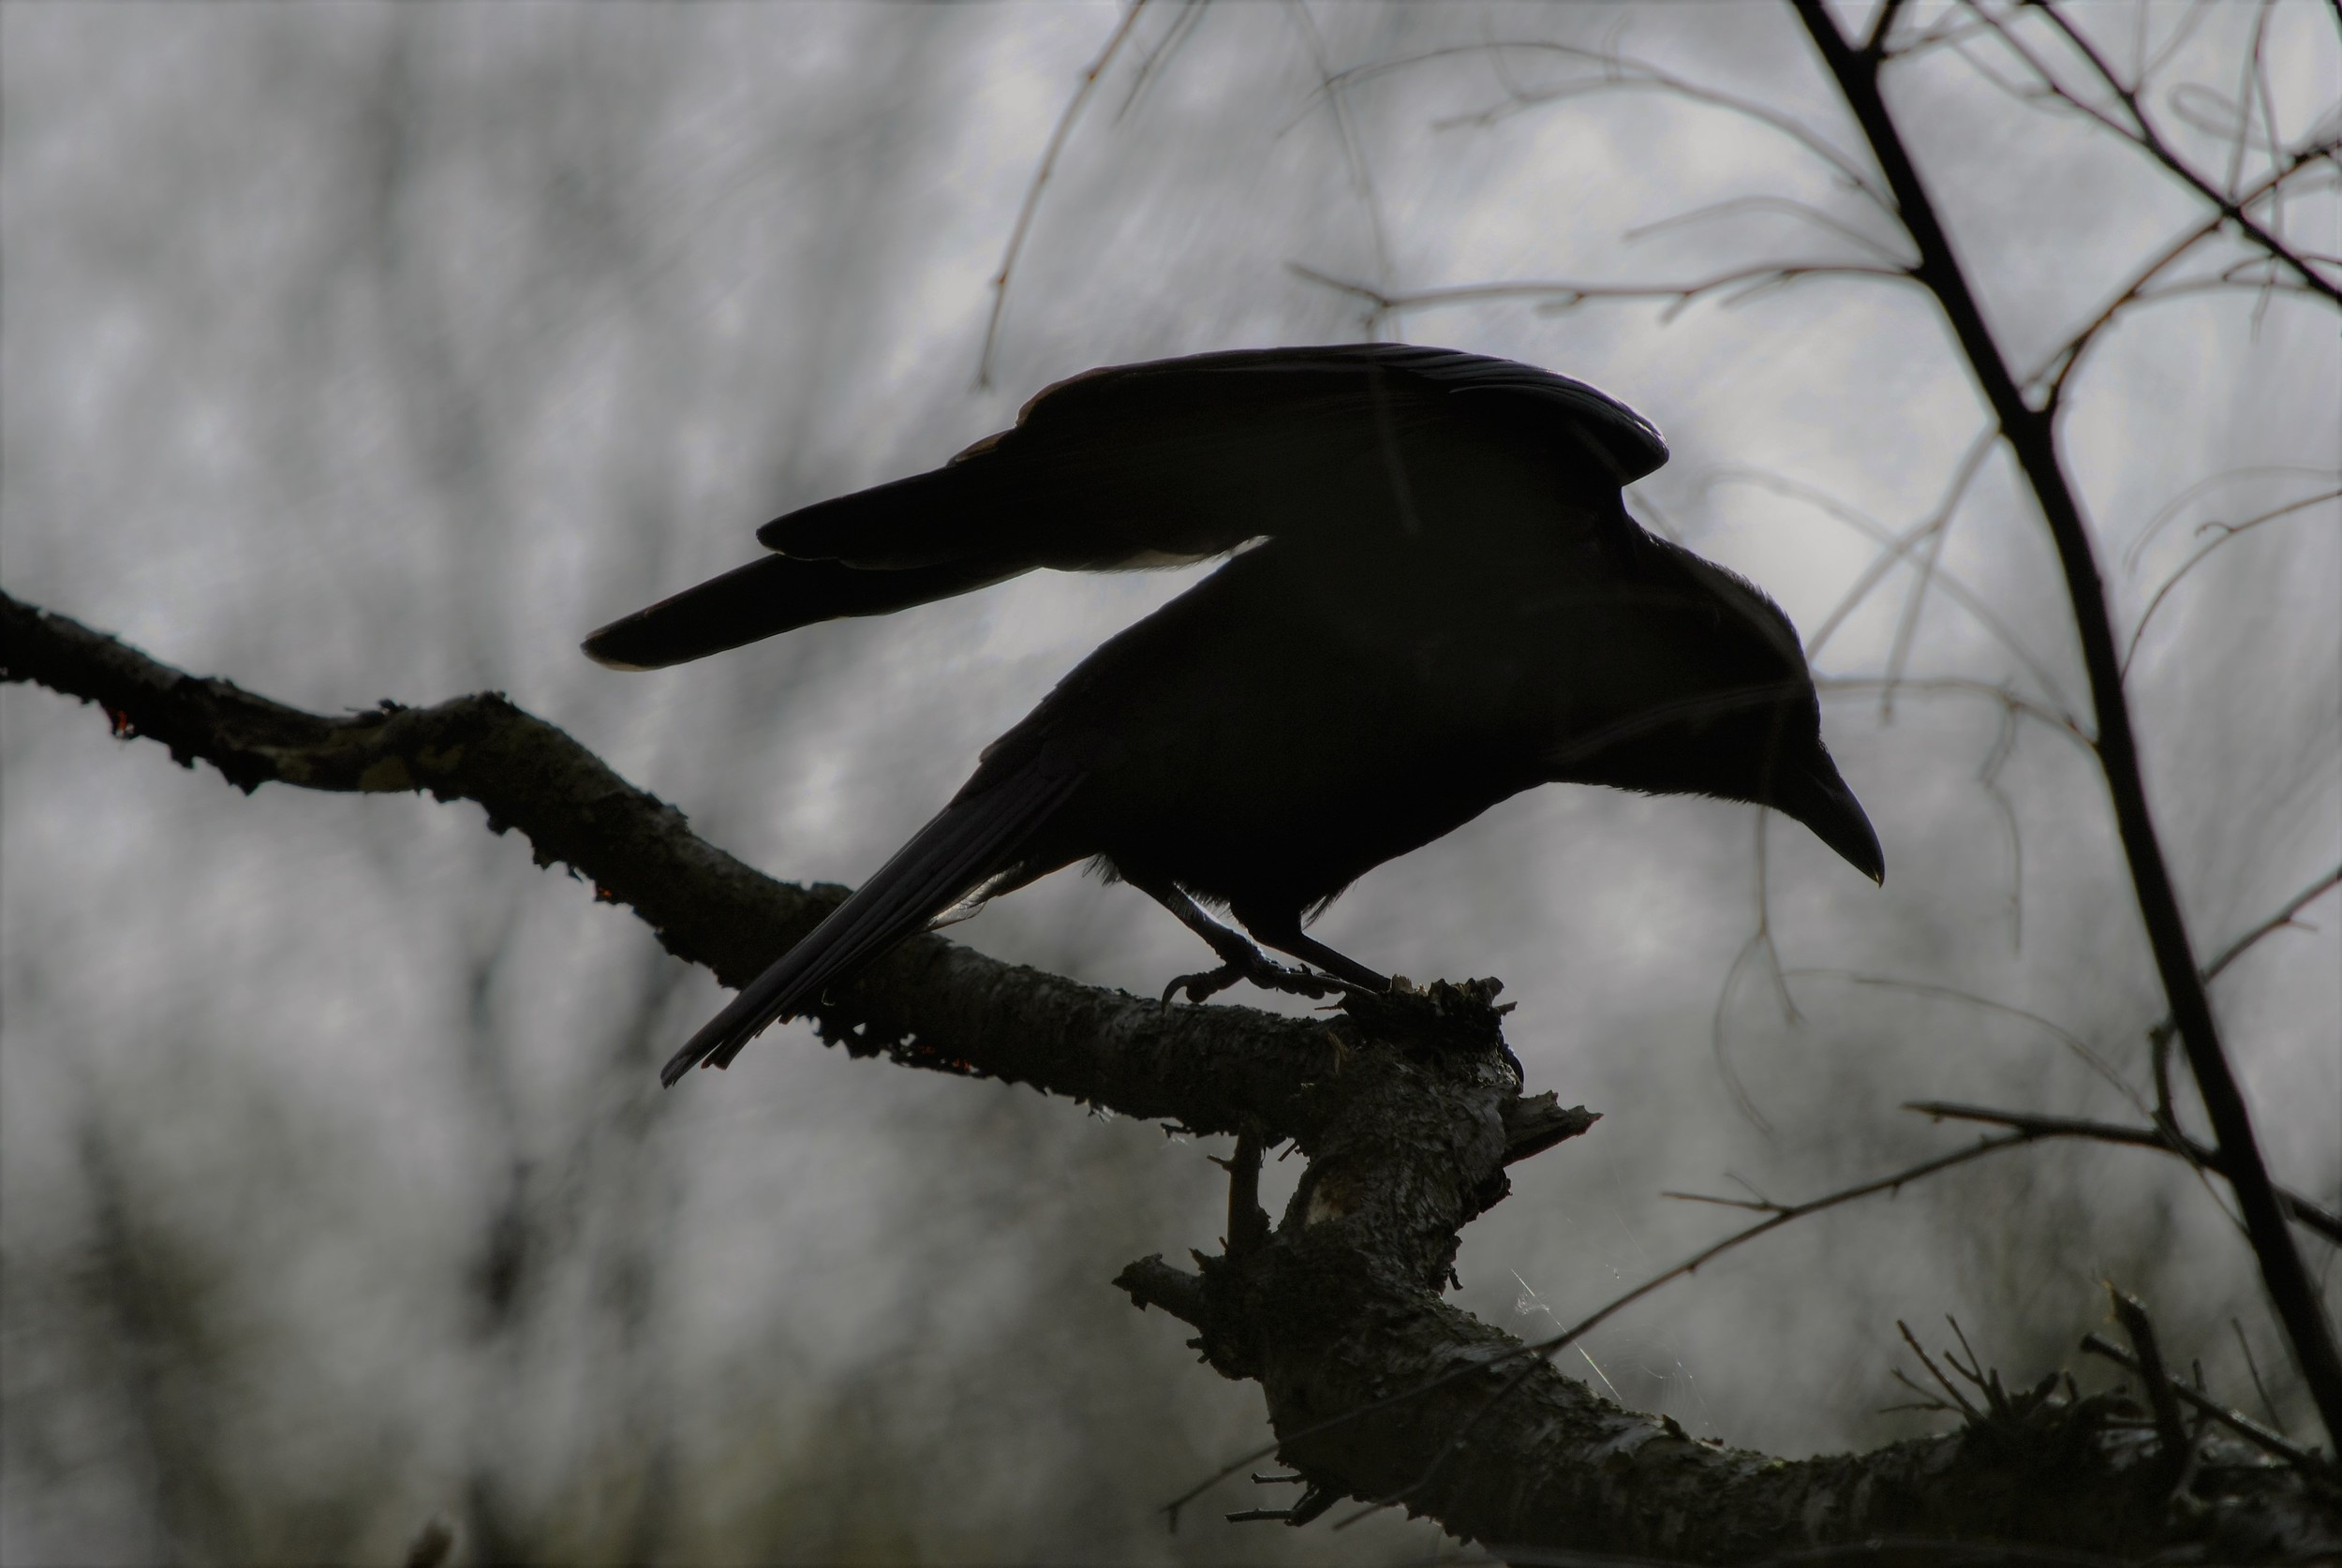 A Raven perched outside the Ginger&Browns pet shop in Northwich, near Chester, Winsford and Frodsham in Cheshire.